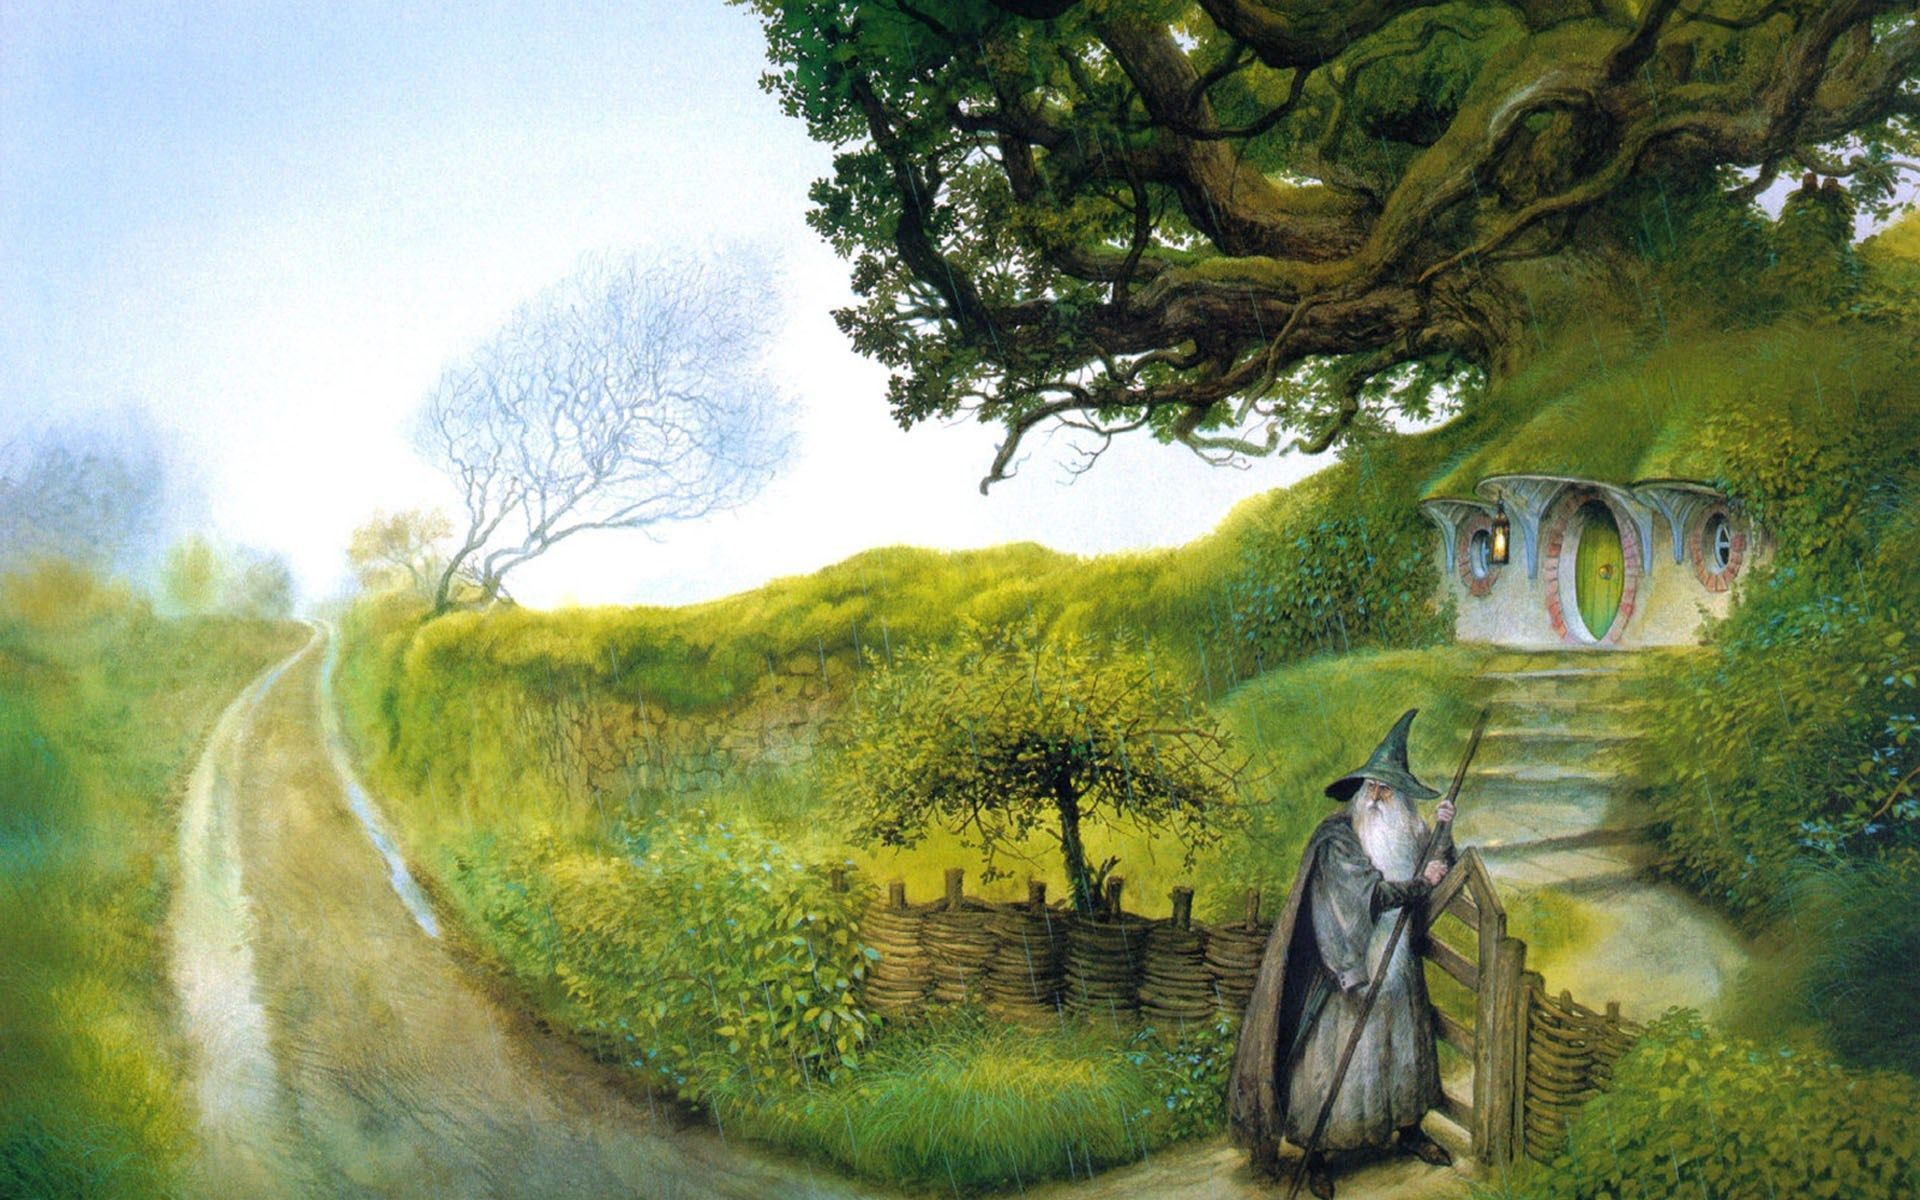 Lotr the Shire Wallpapers - Top Free